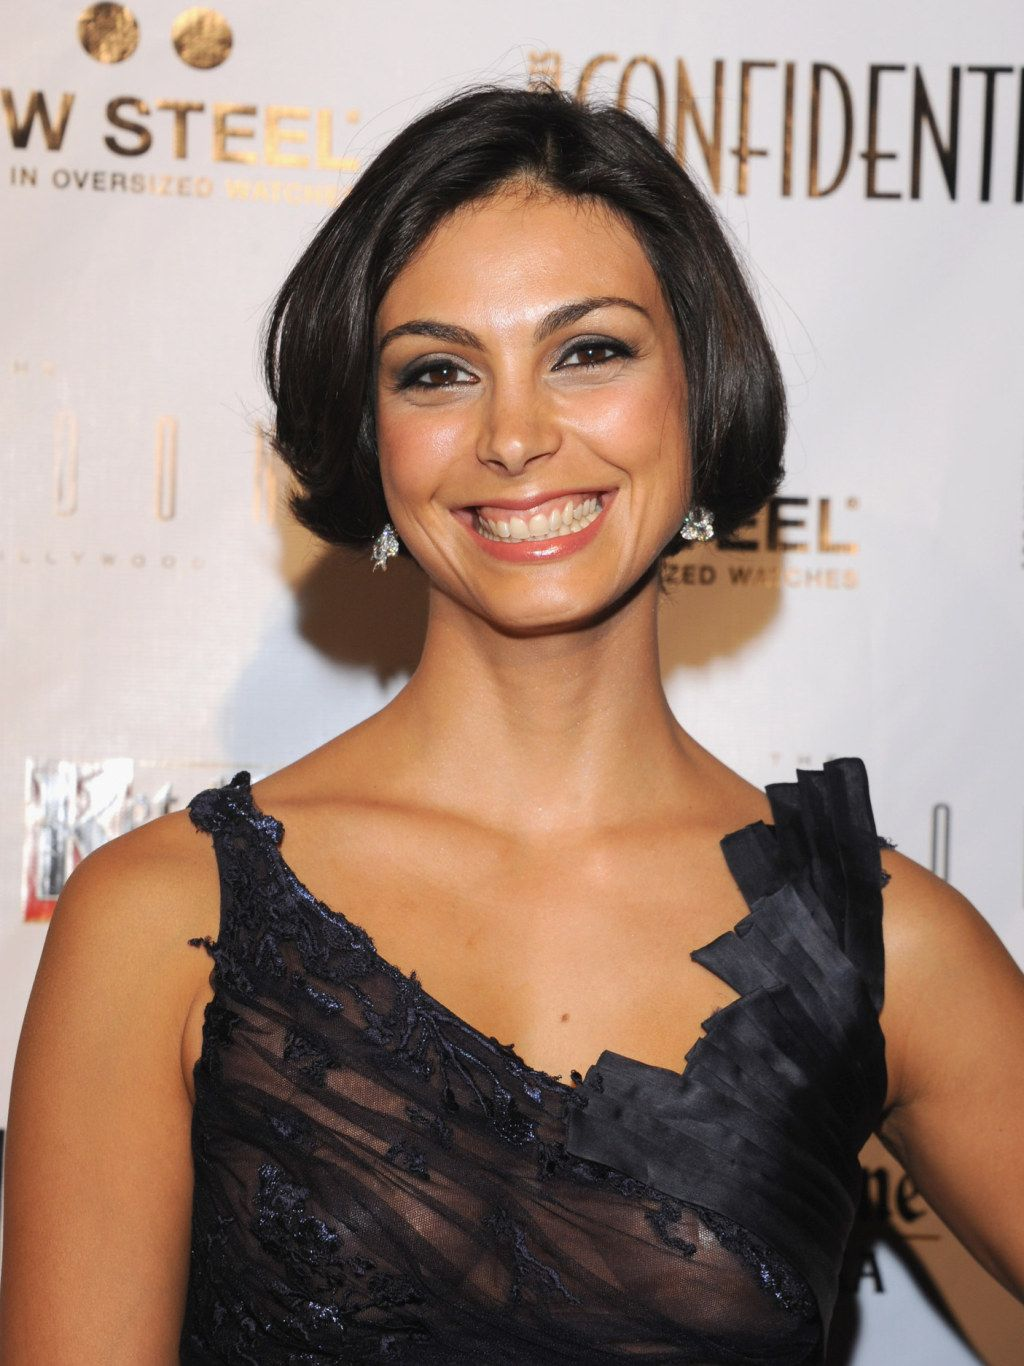 Cleavage Morena Baccarin naked (88 photo), Sexy, Leaked, Boobs, bra 2015